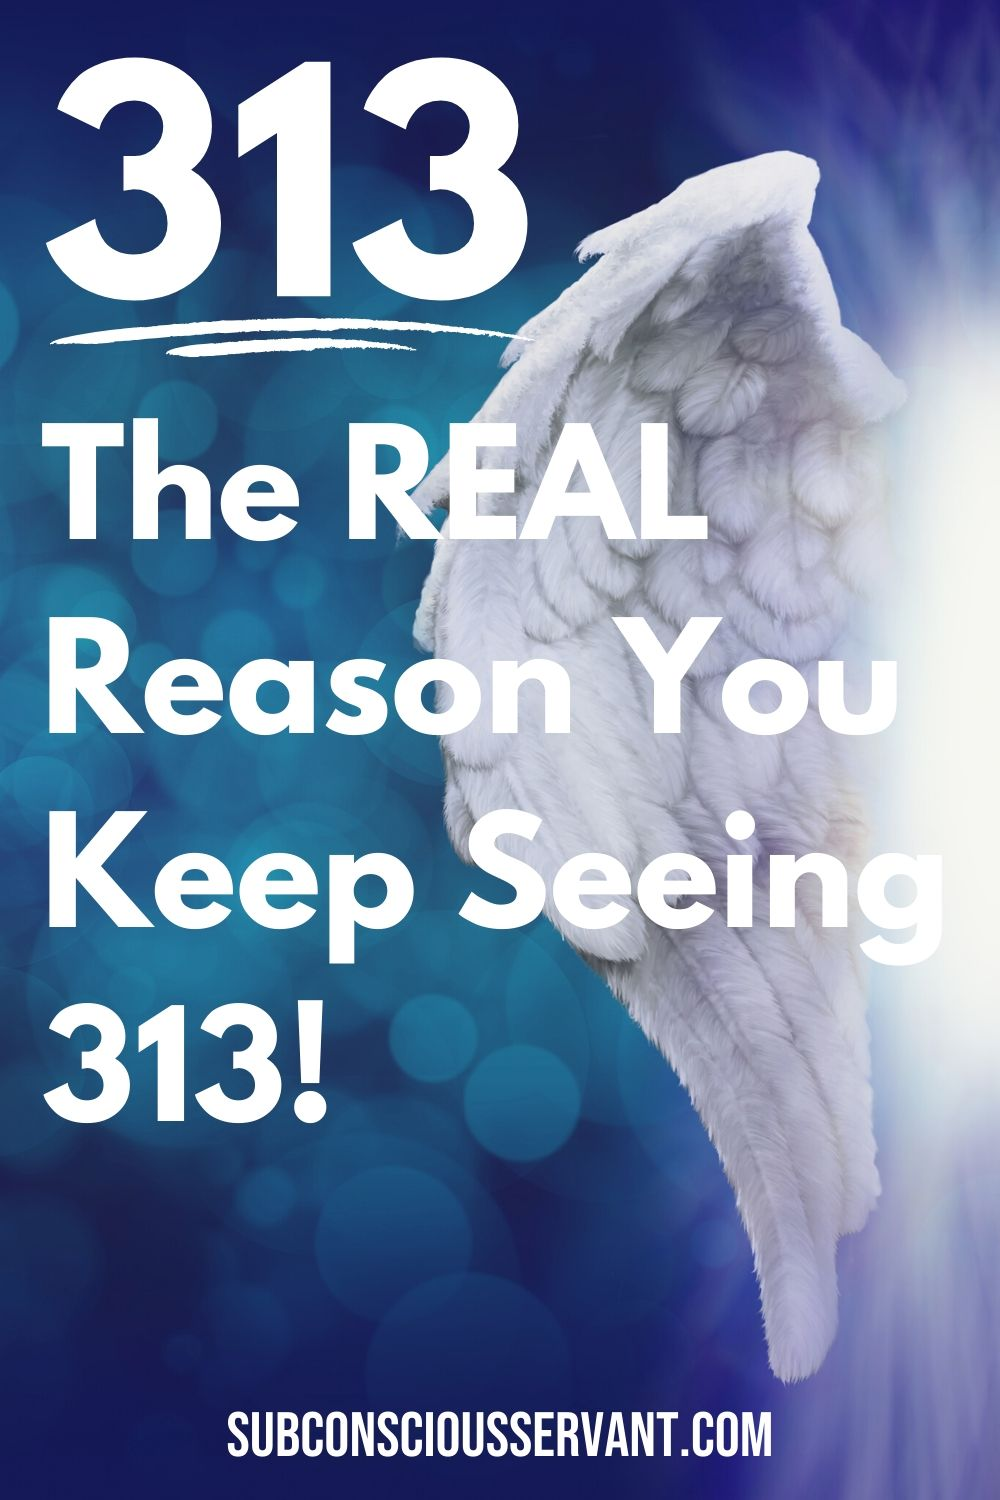 Numerology Number 313 - The REAL Reason You Keep Seeing 313!